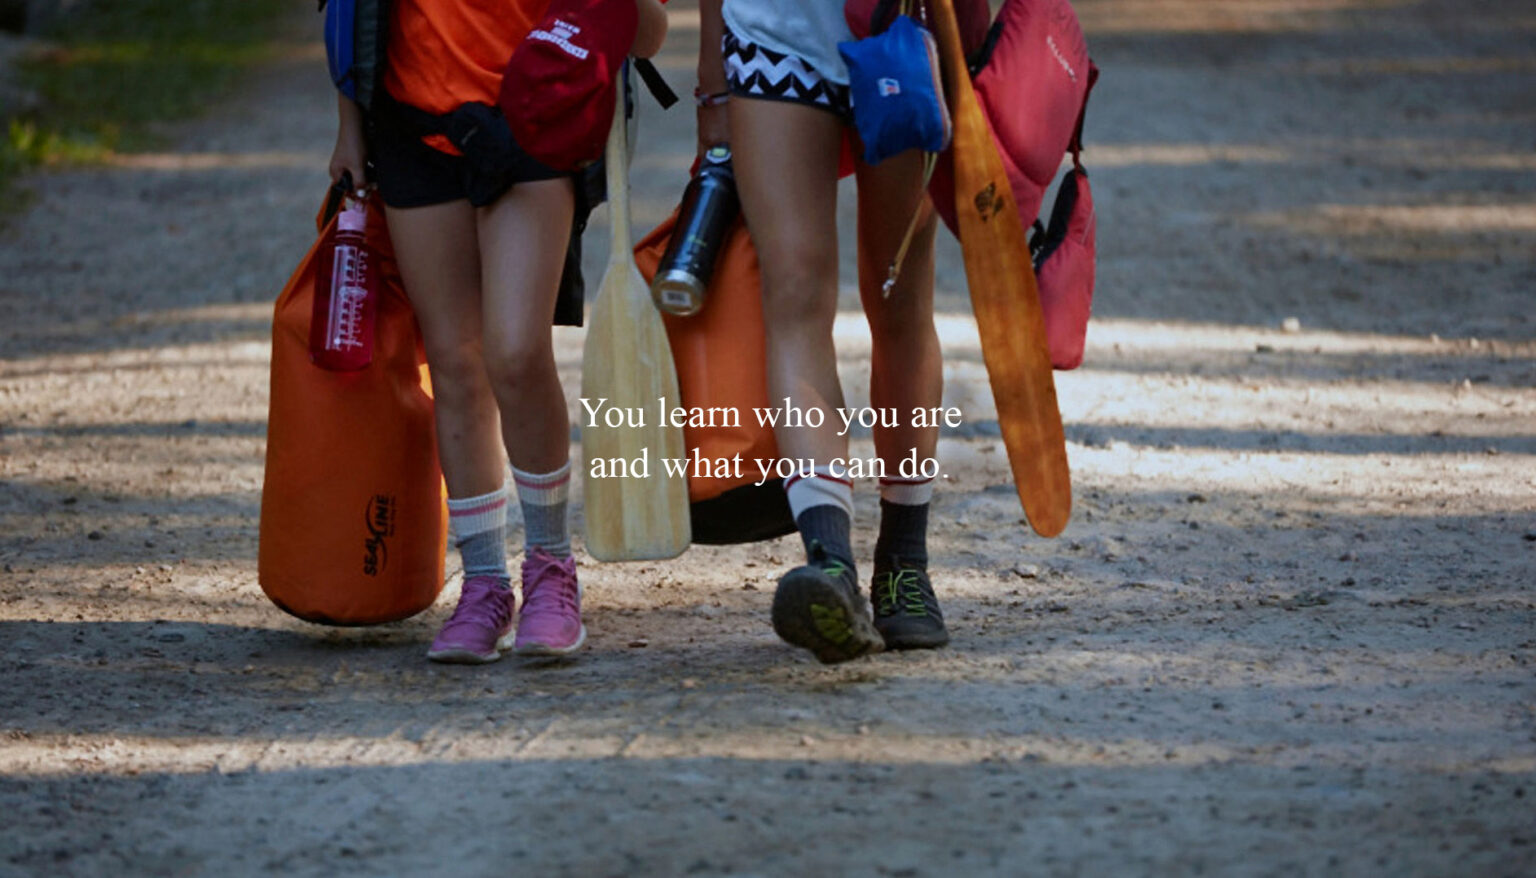 You learn who you are and what you can do